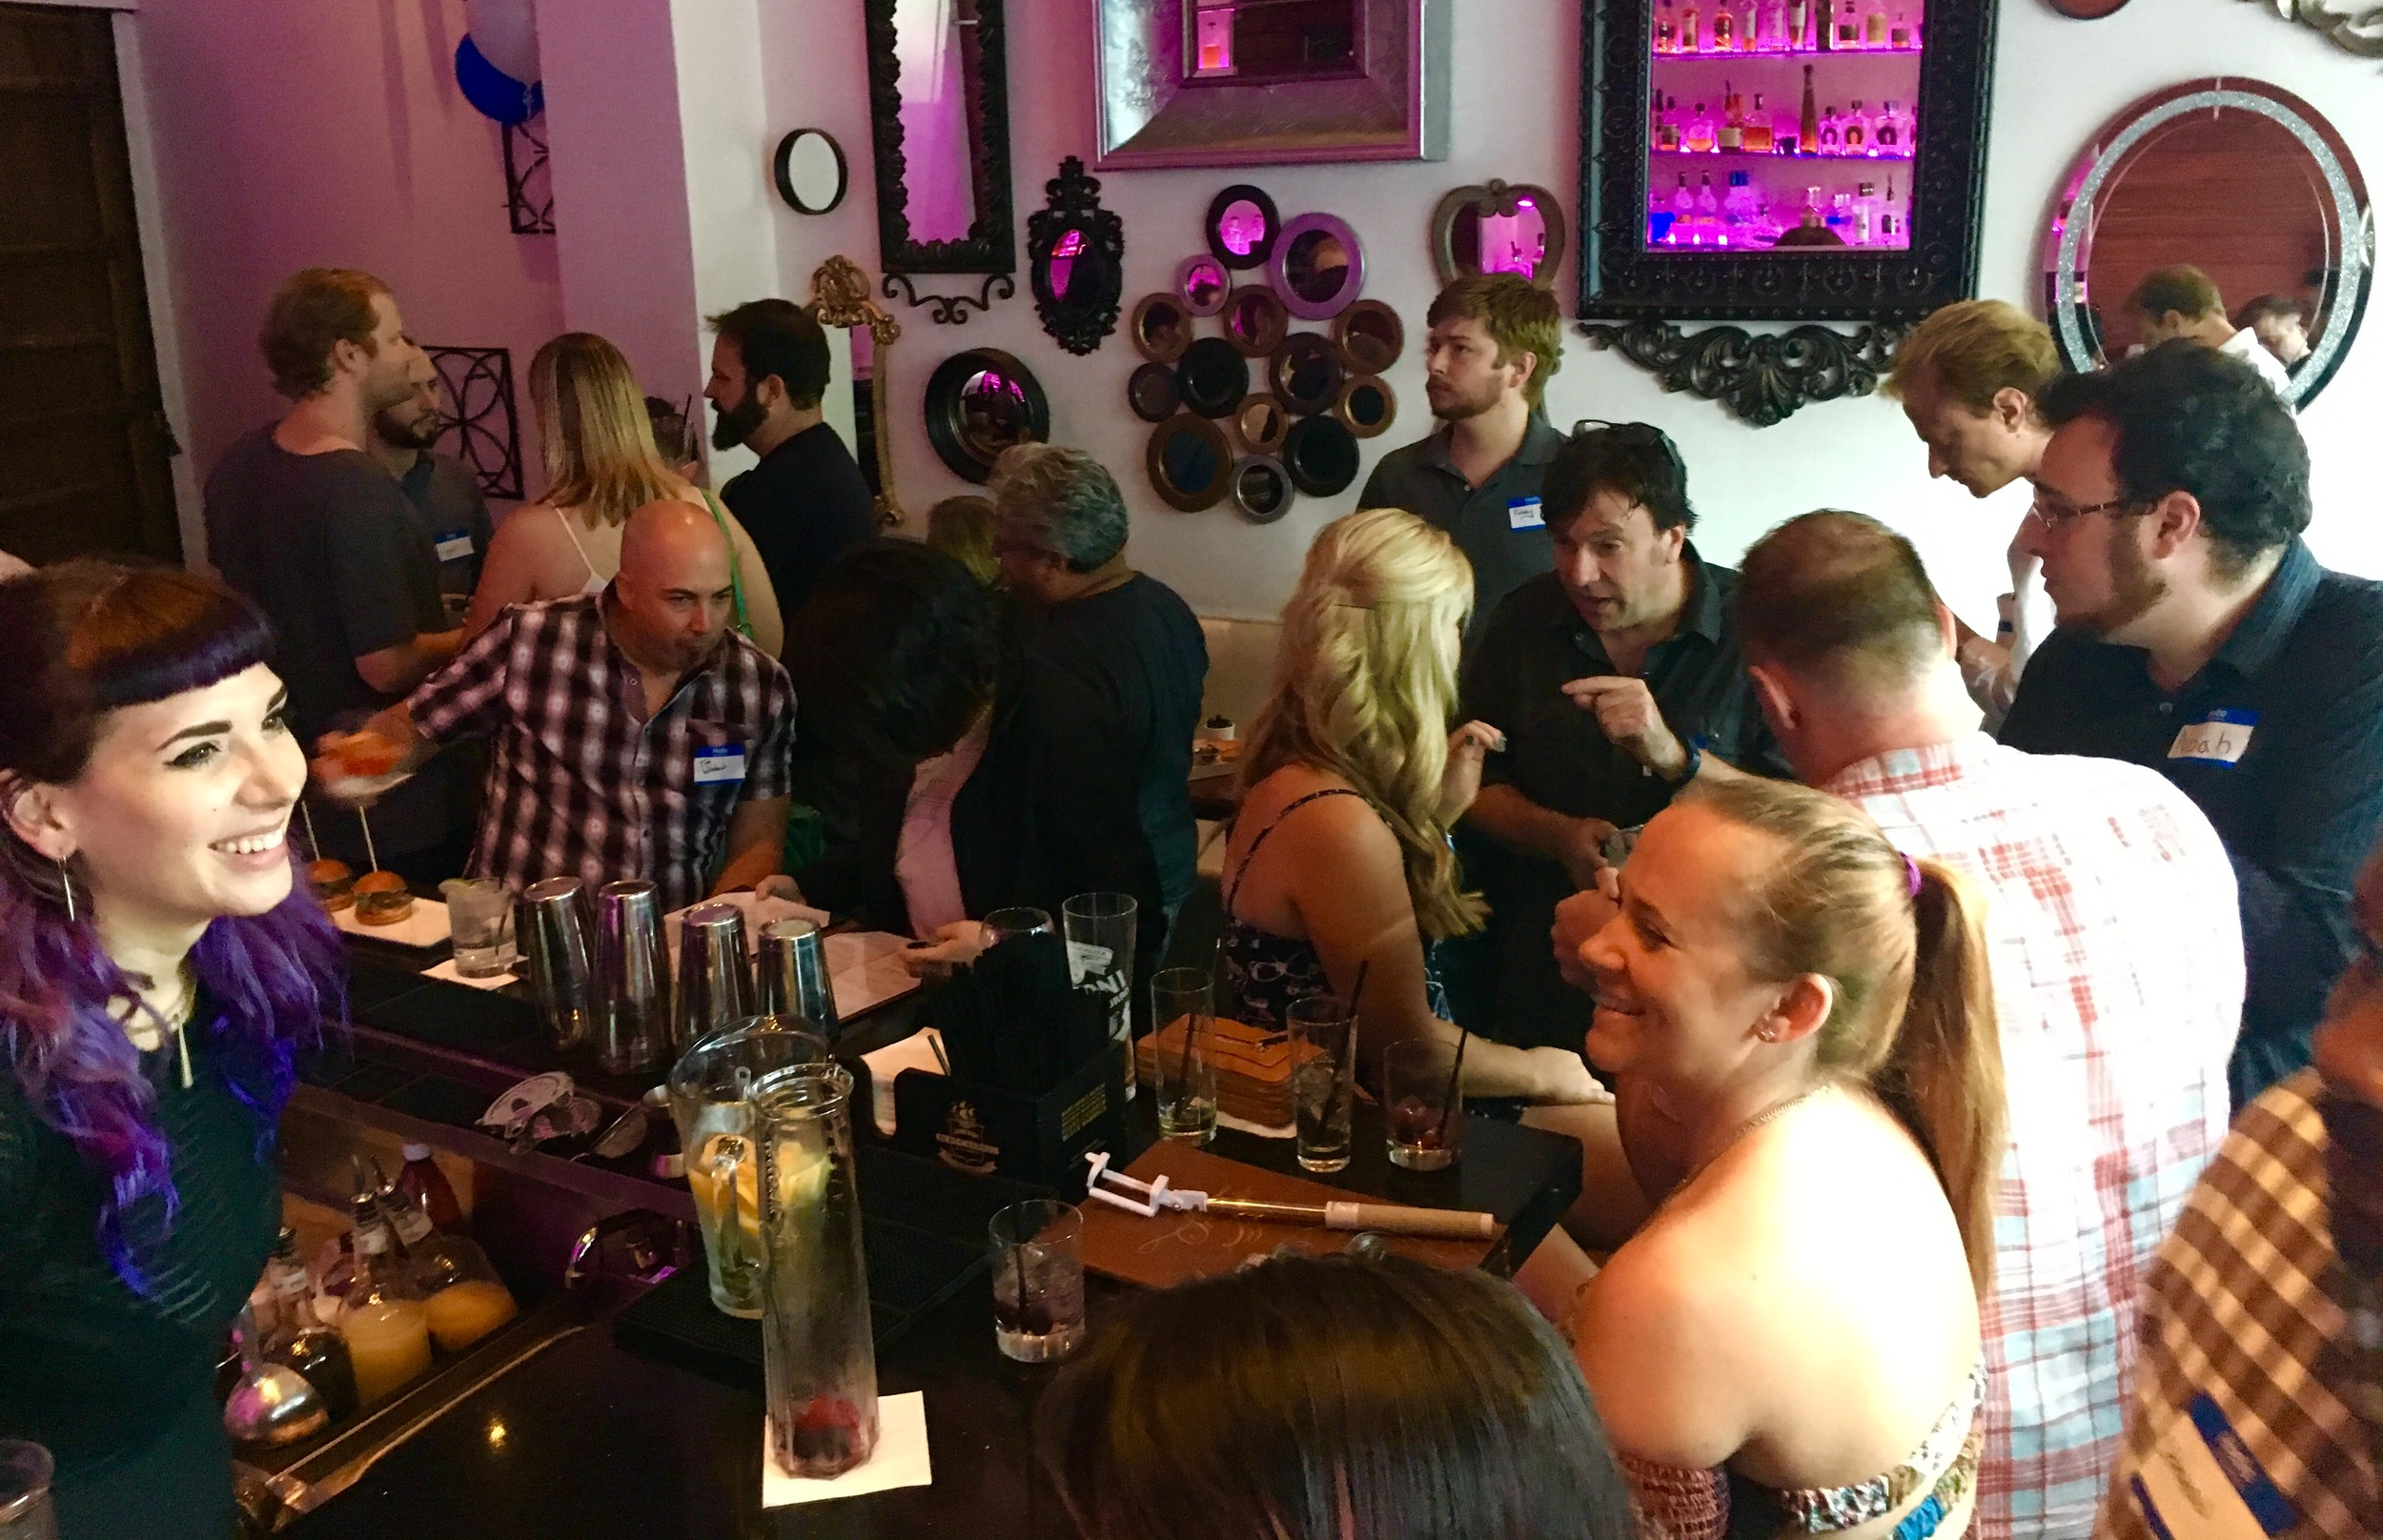 The second BCPC West meetup at The Powder Room in Hollywood (July 16, 2016)